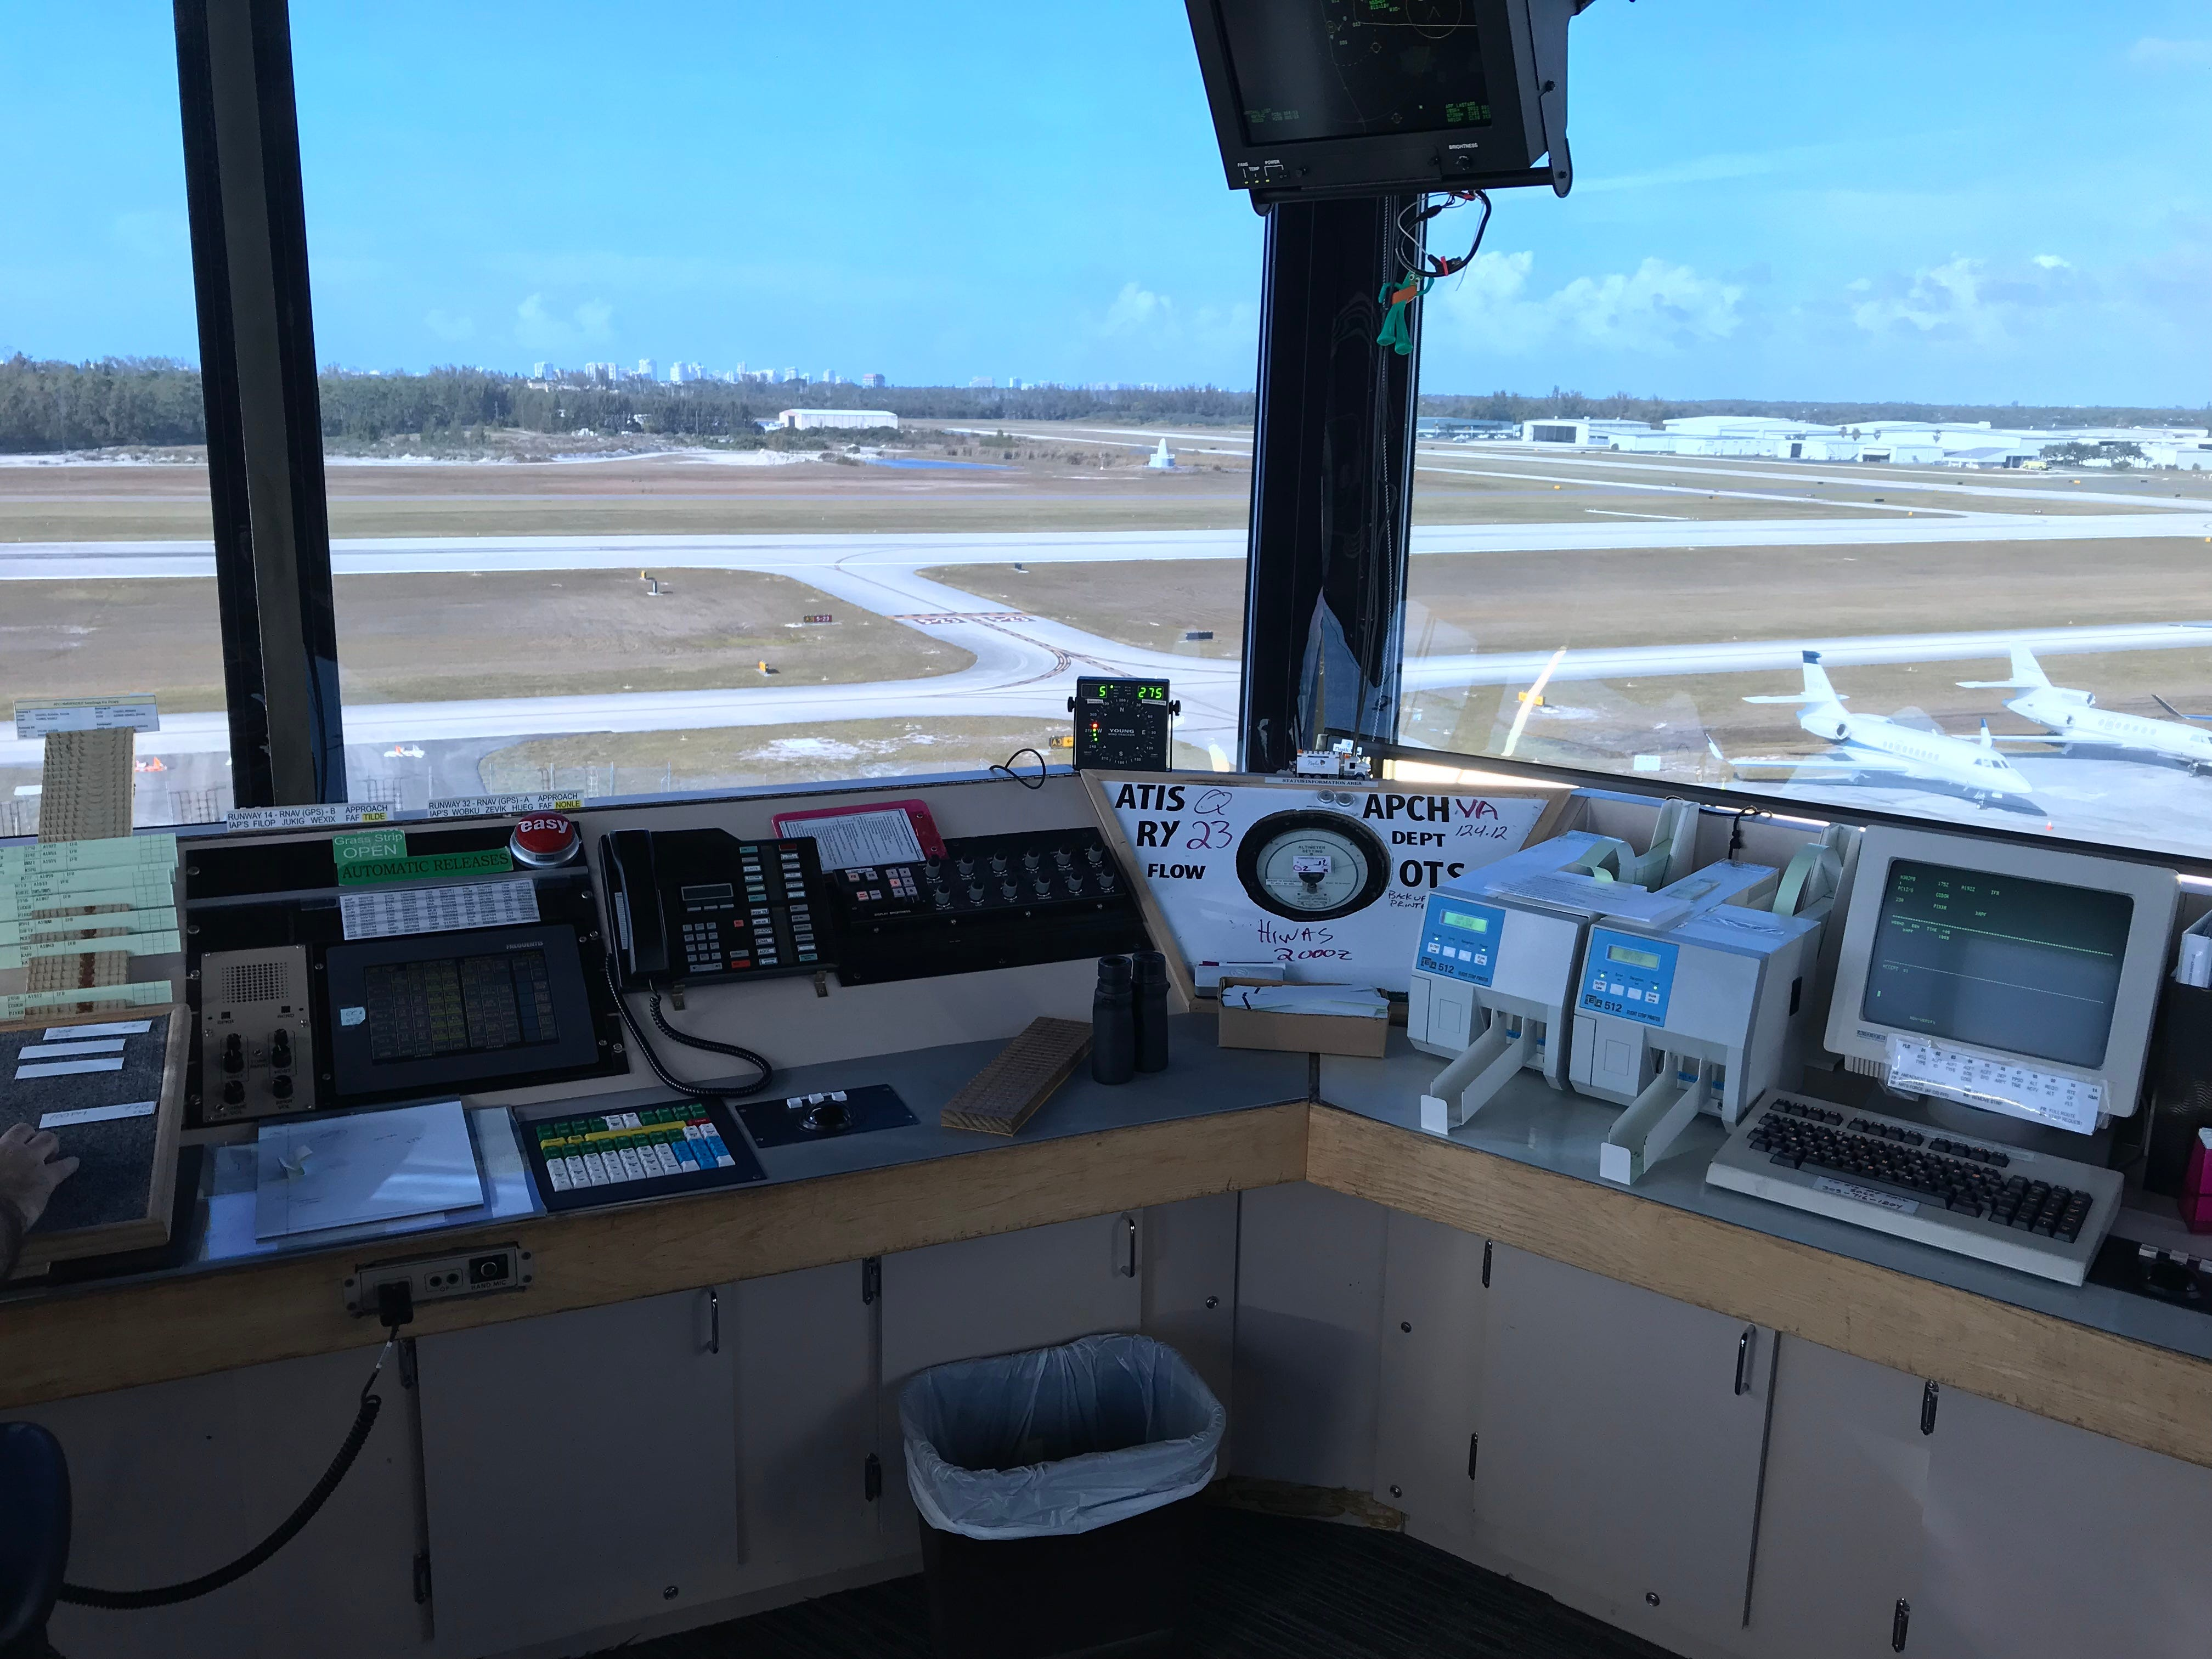 In the Know visuals: New $8 million terminal project begins at growing Naples Airport 3